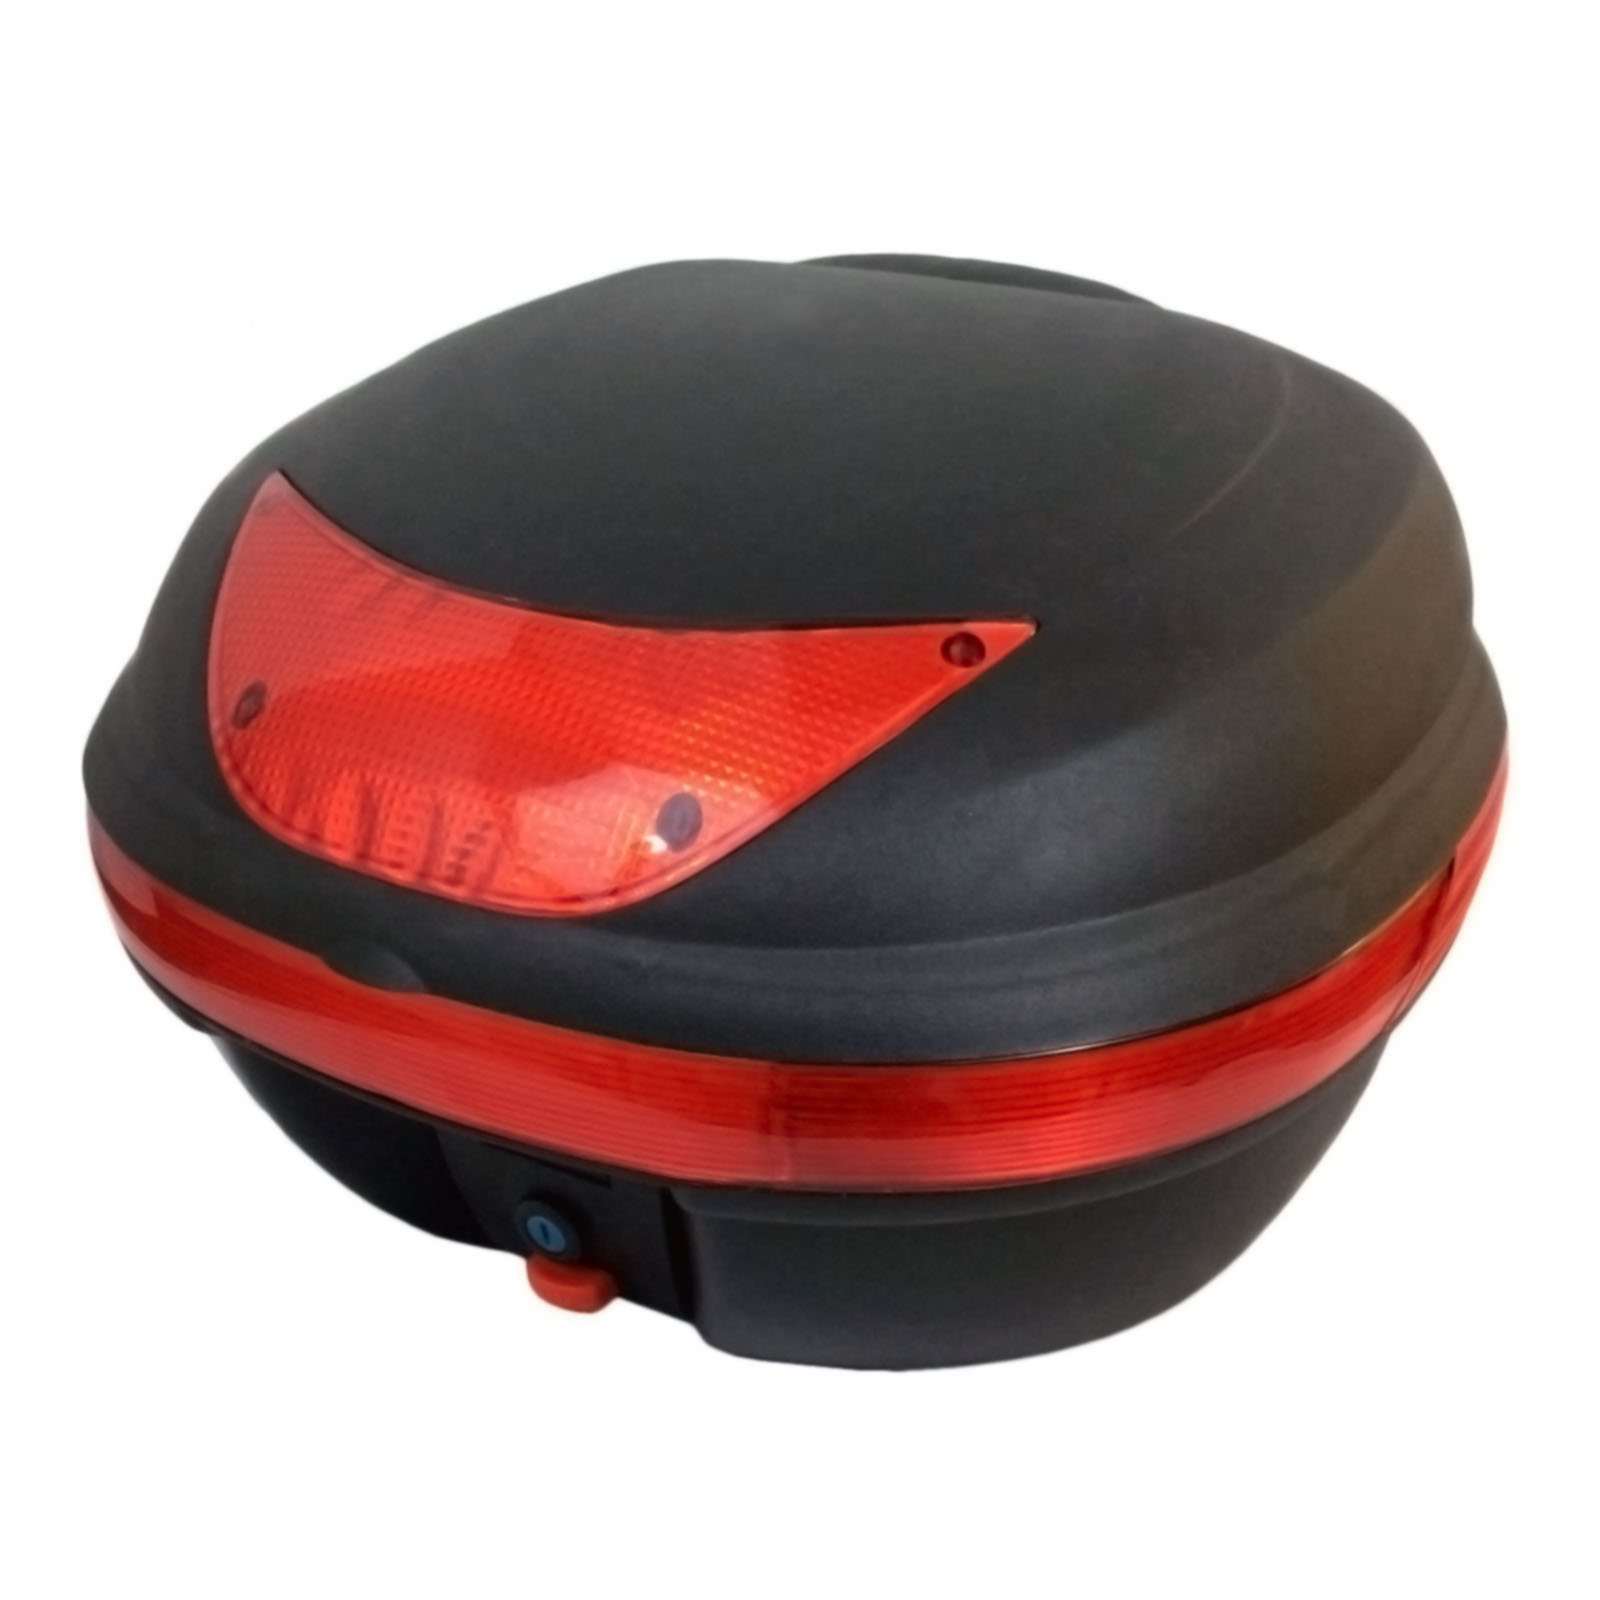 MMG Motorcycle Scooter Top Box Tail Trunk Luggage Box - 29 Lt Capacity - Can Store One (1) Helmet (997)